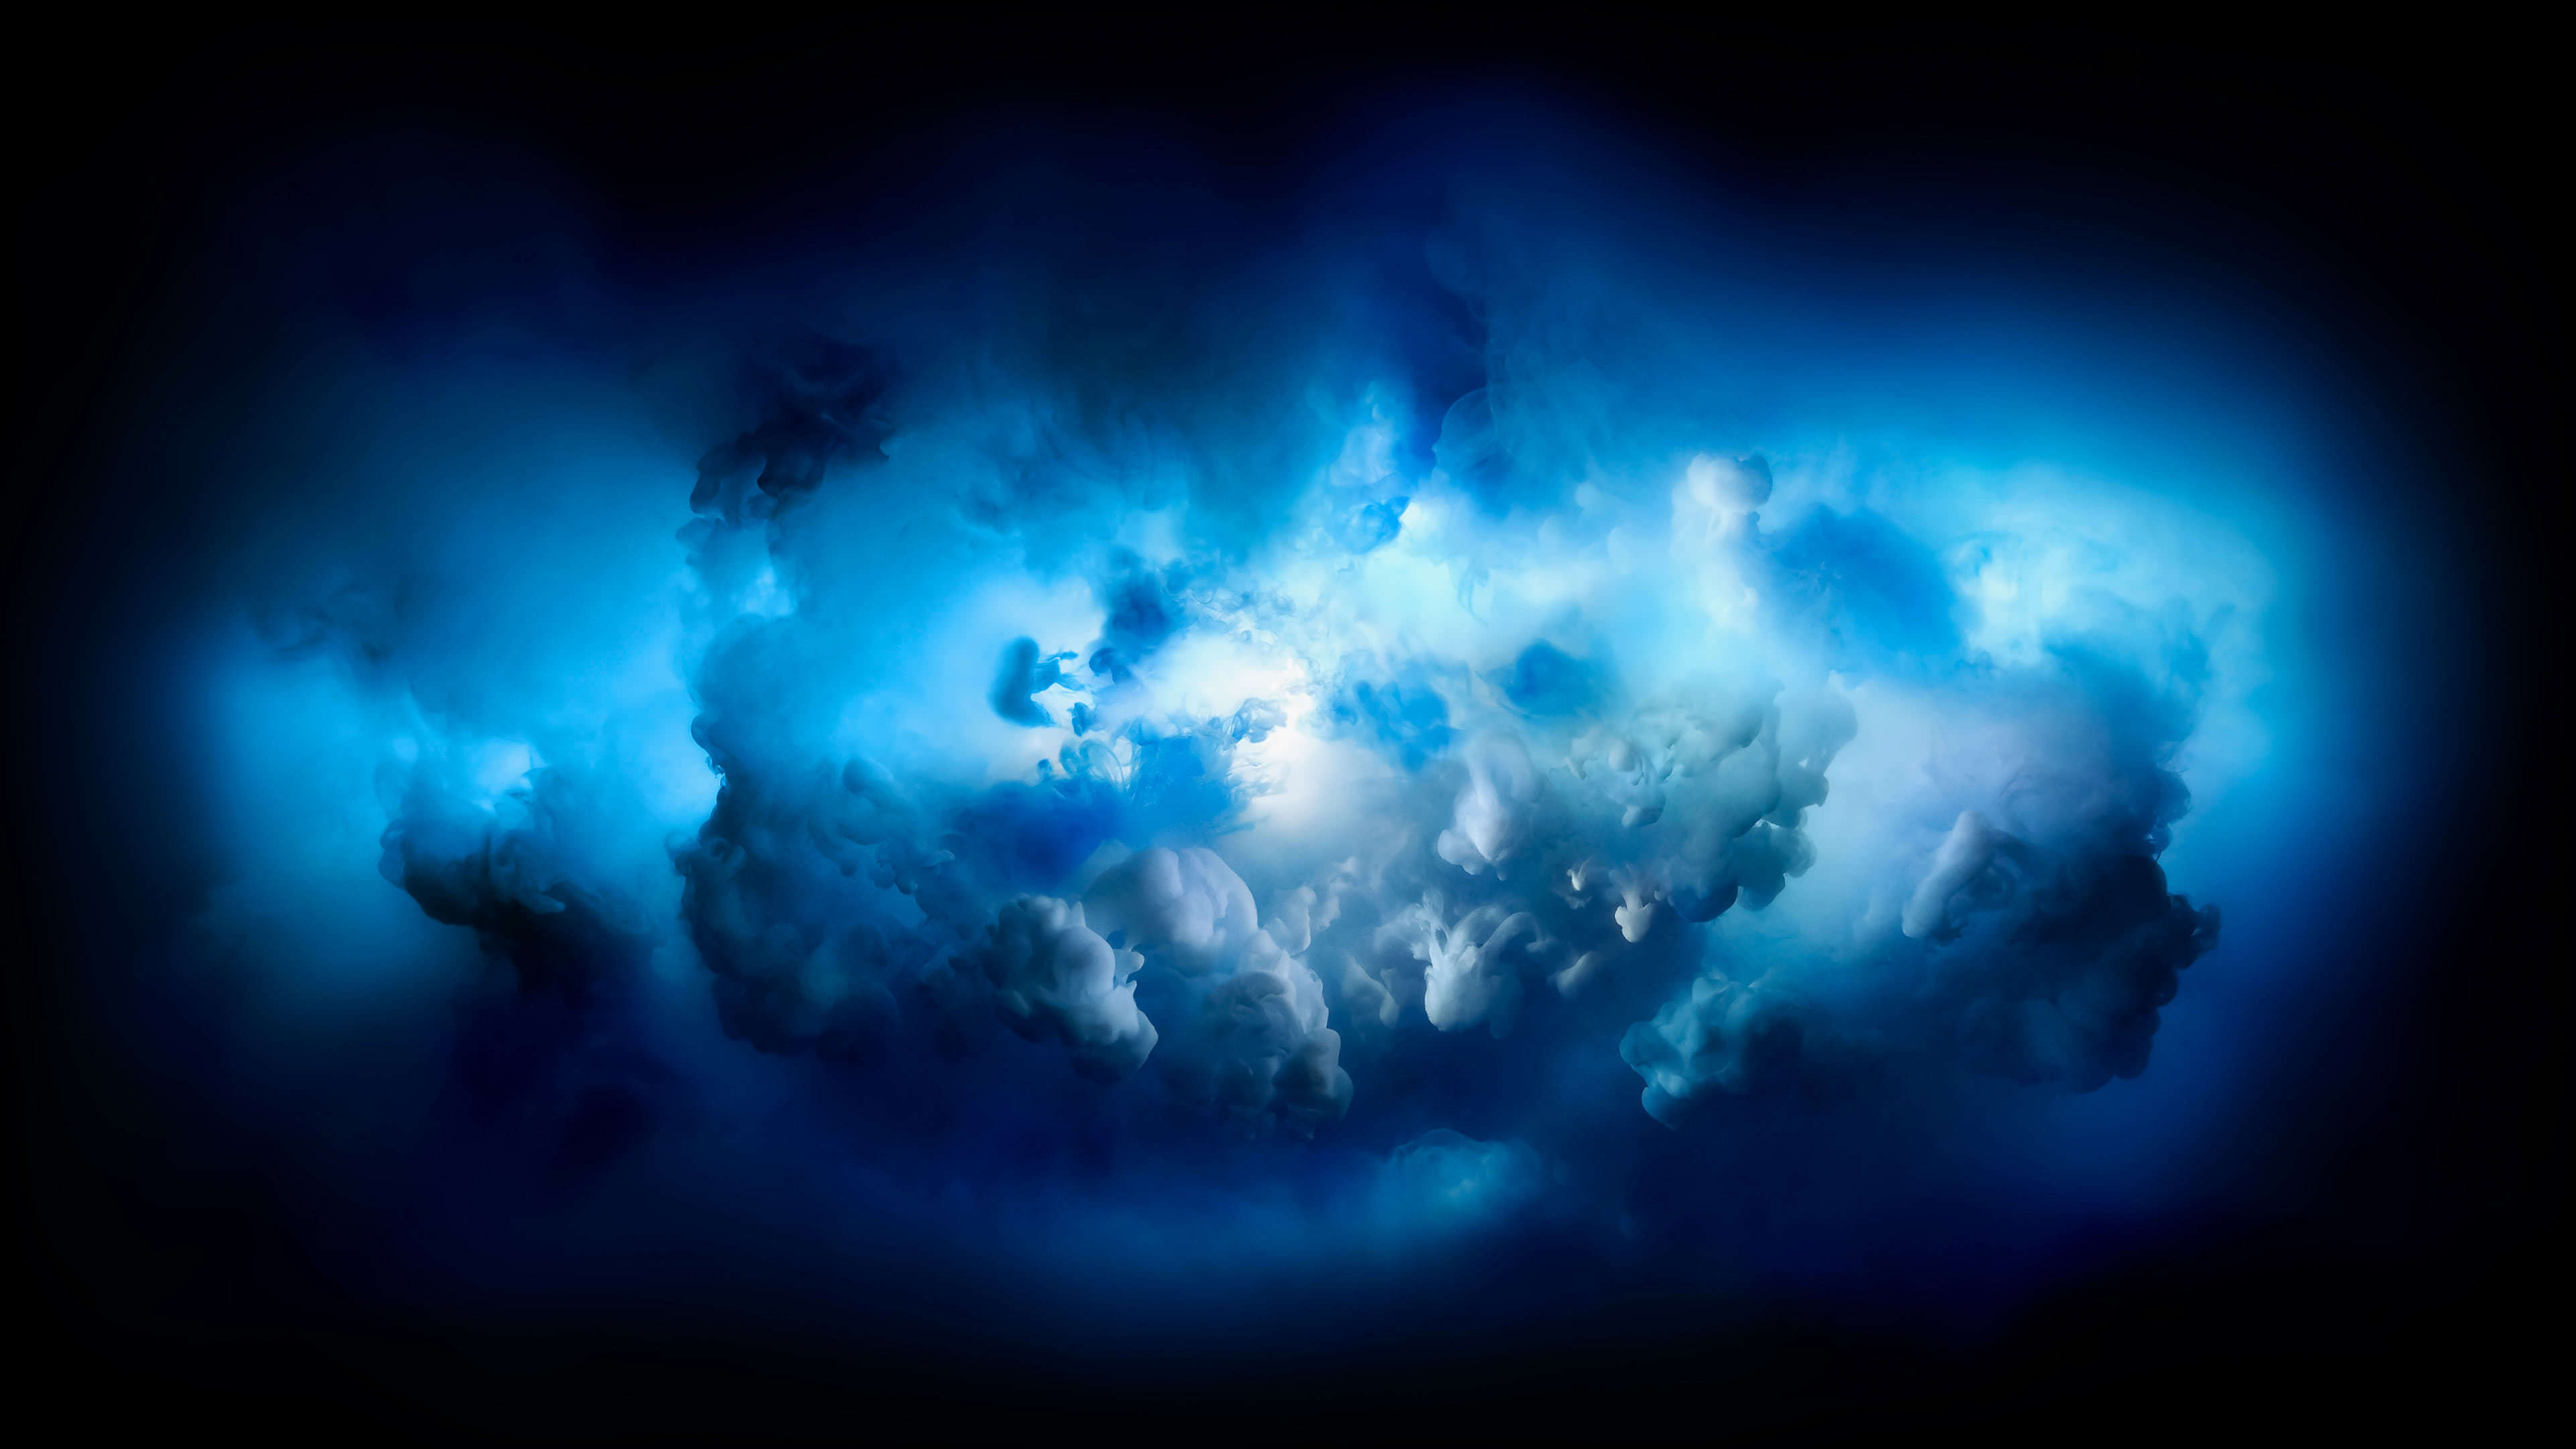 Mac OSX Blue Clouds Background UHD 4K Wallpaper Pixelz 3840x2160